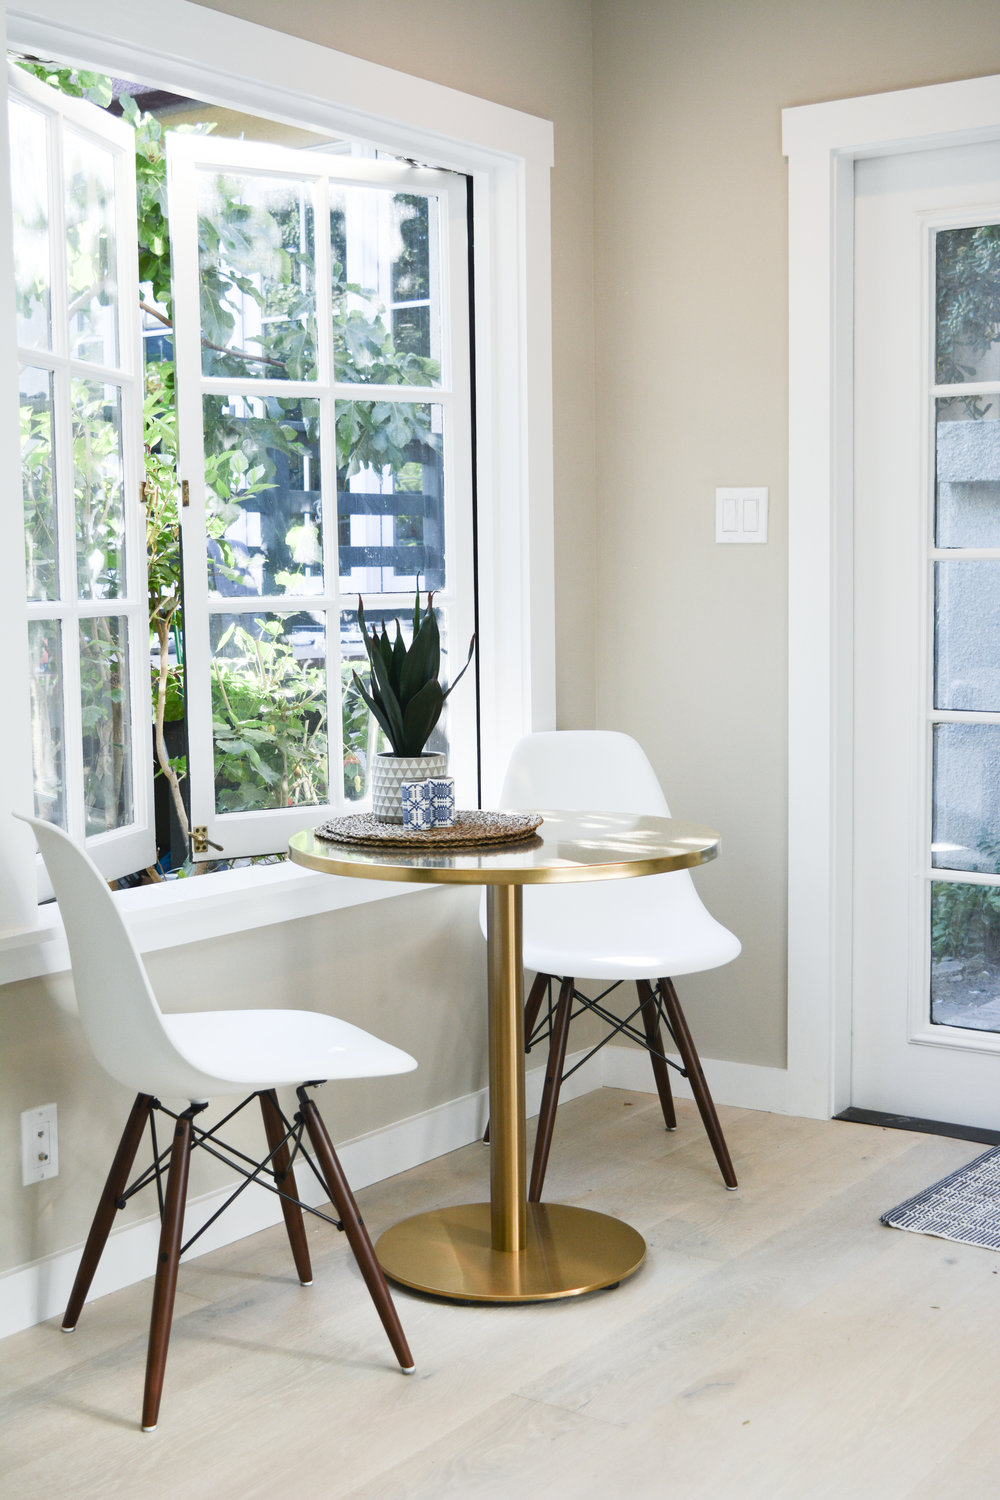 Angela Grace Design // Berkeley Guest House Cottage // San Francisco and SF Bay Area Interior Designer, Decorator